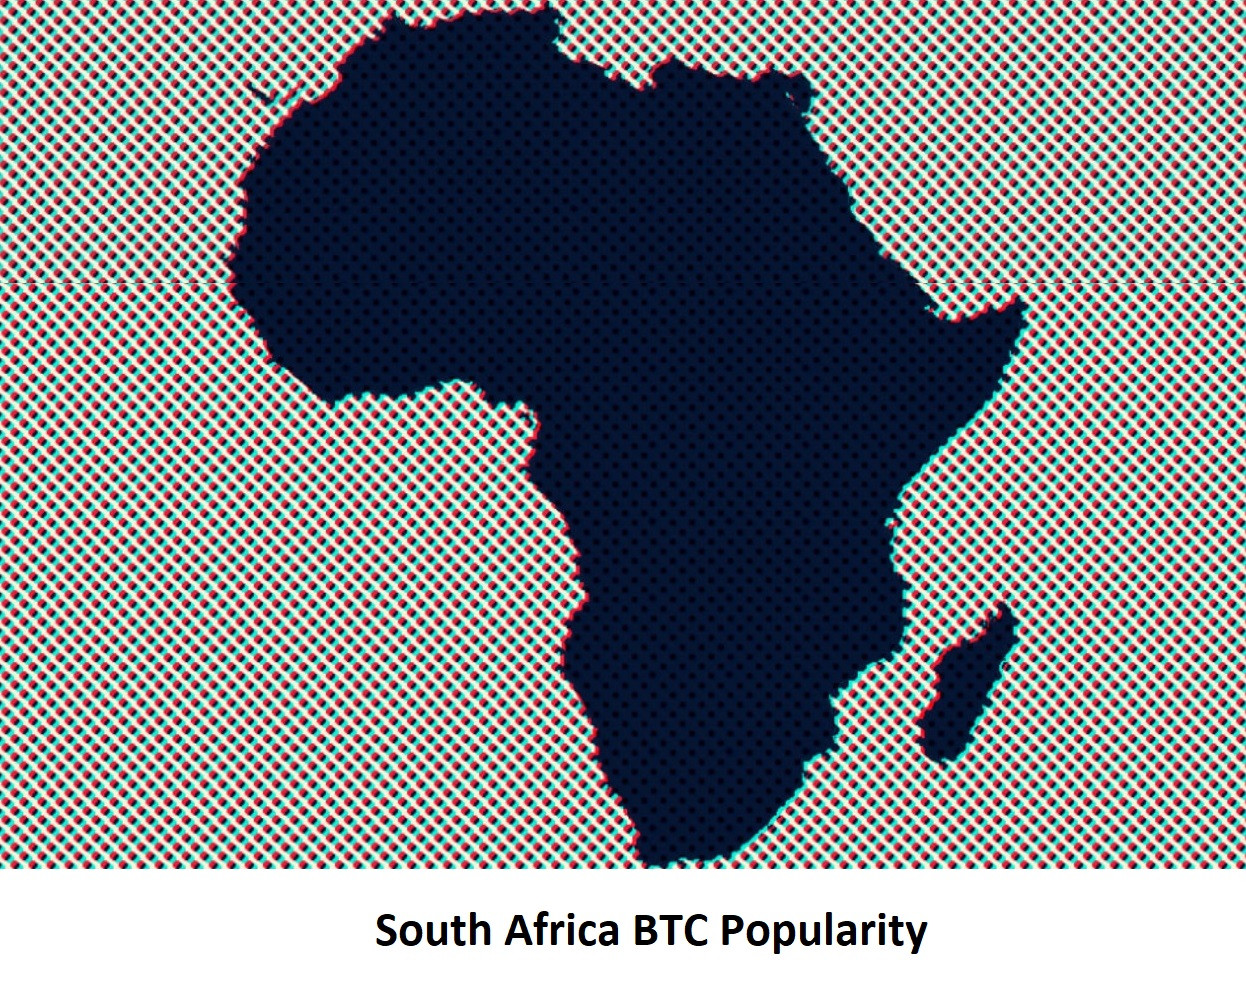 South Africa BTC Popularity